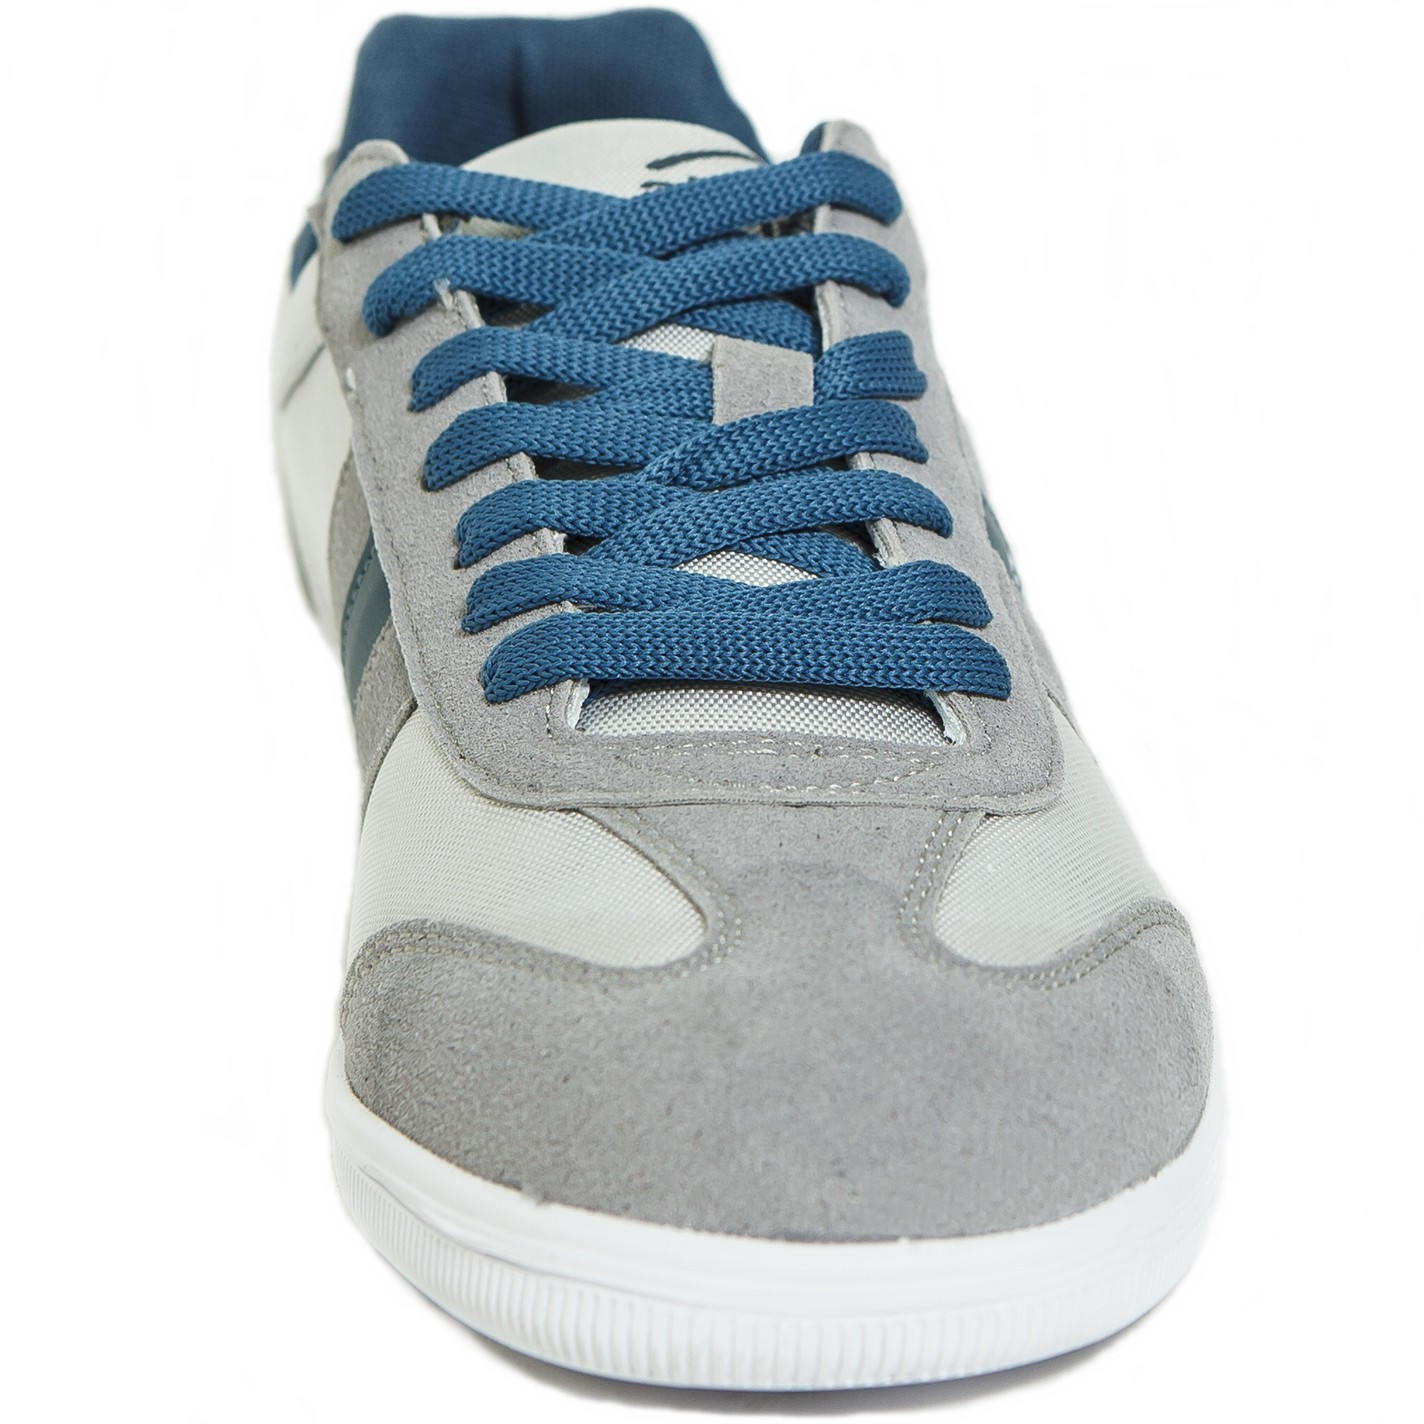 Find Slip On Athletic Shoes In  Narrow